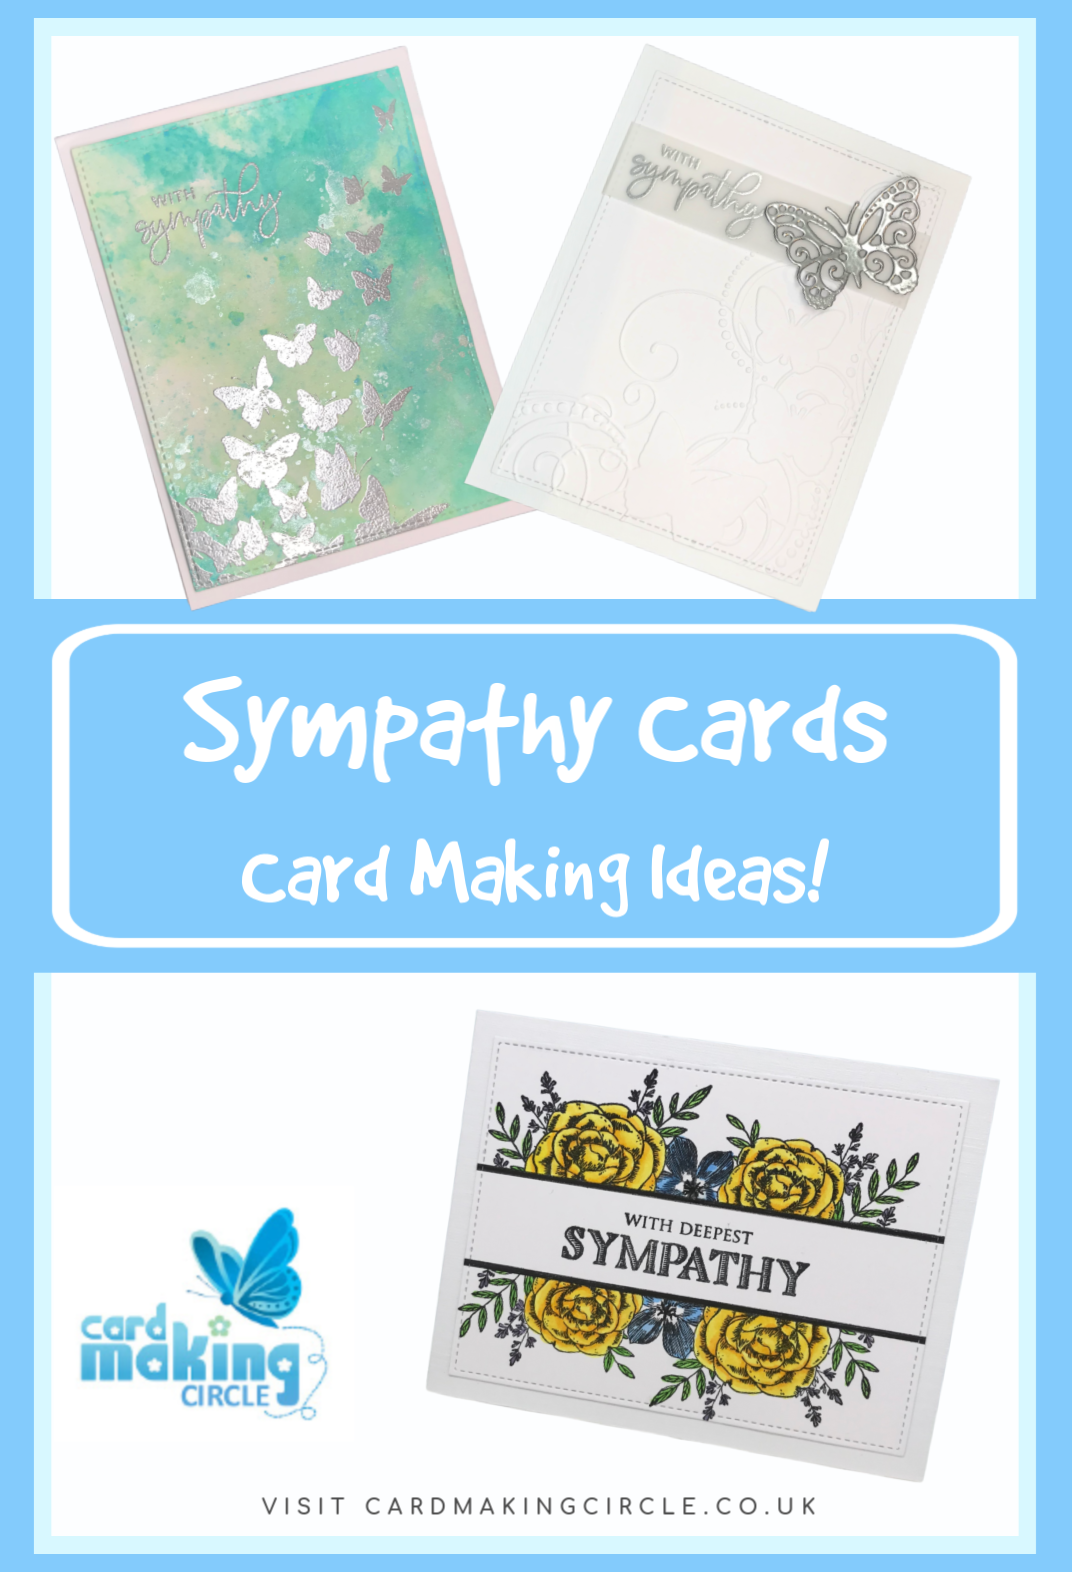 Sympathy cards ideas to send love and support at a difficult time. #sympathycards #cardmakingideas